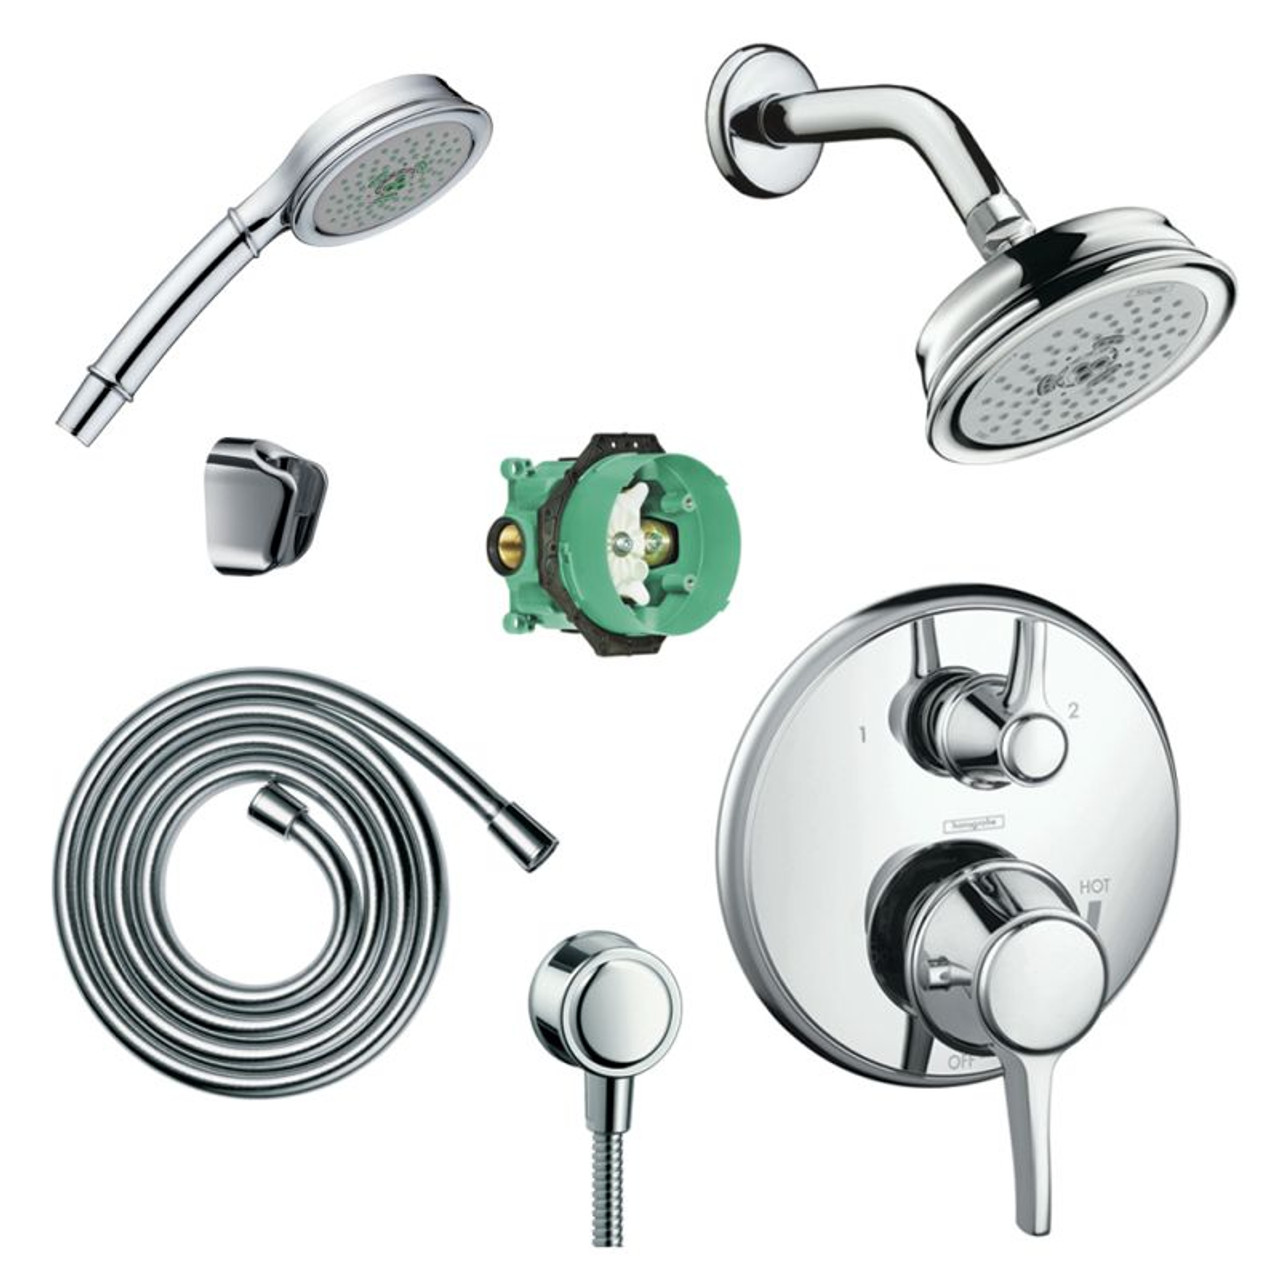 Hansgrohe Ksh04449 04070 72pc Croma Shower Faucet Kit With Handshower Pbv Trim Diverter And Rough In